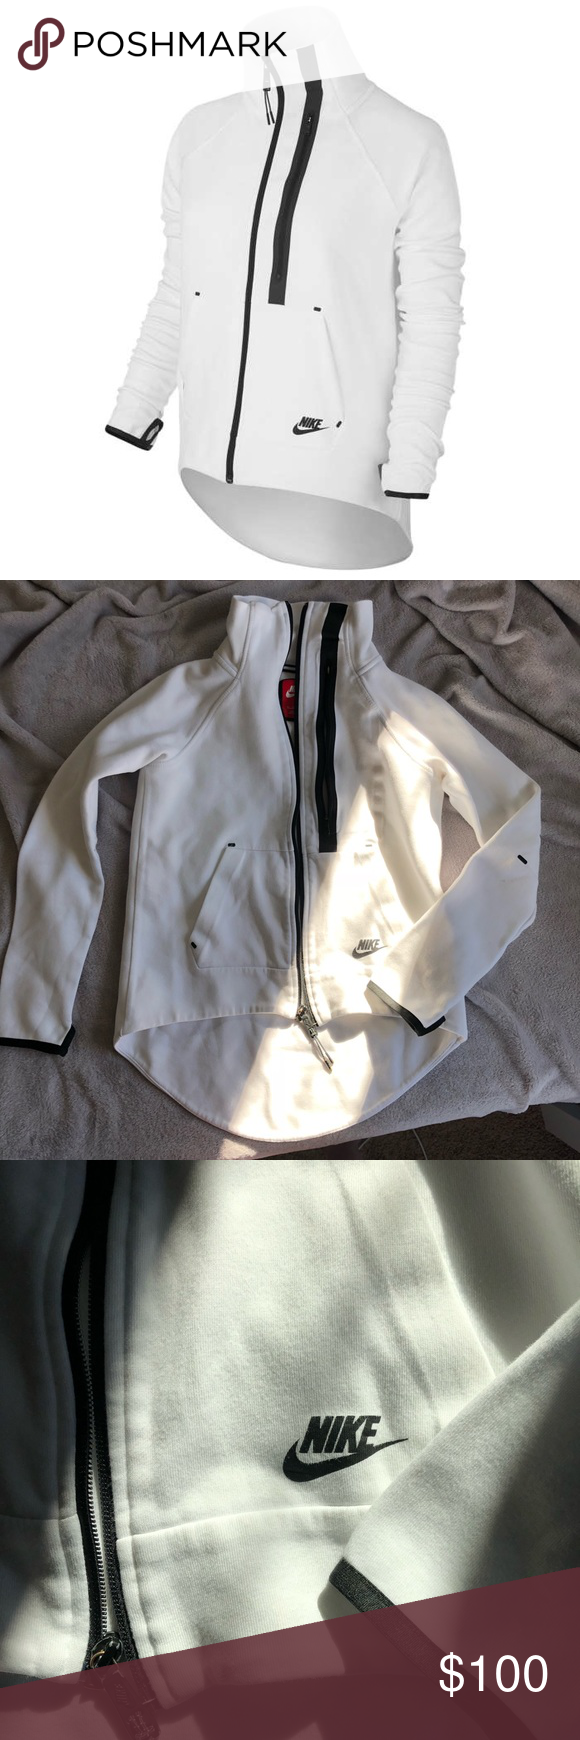 201ba1e0db93 Nike Women s Tech Fleece Moto Cape Jacket In good condition. No flaws or  stains. Features - thermal construction traps body heat for optimum warmth.